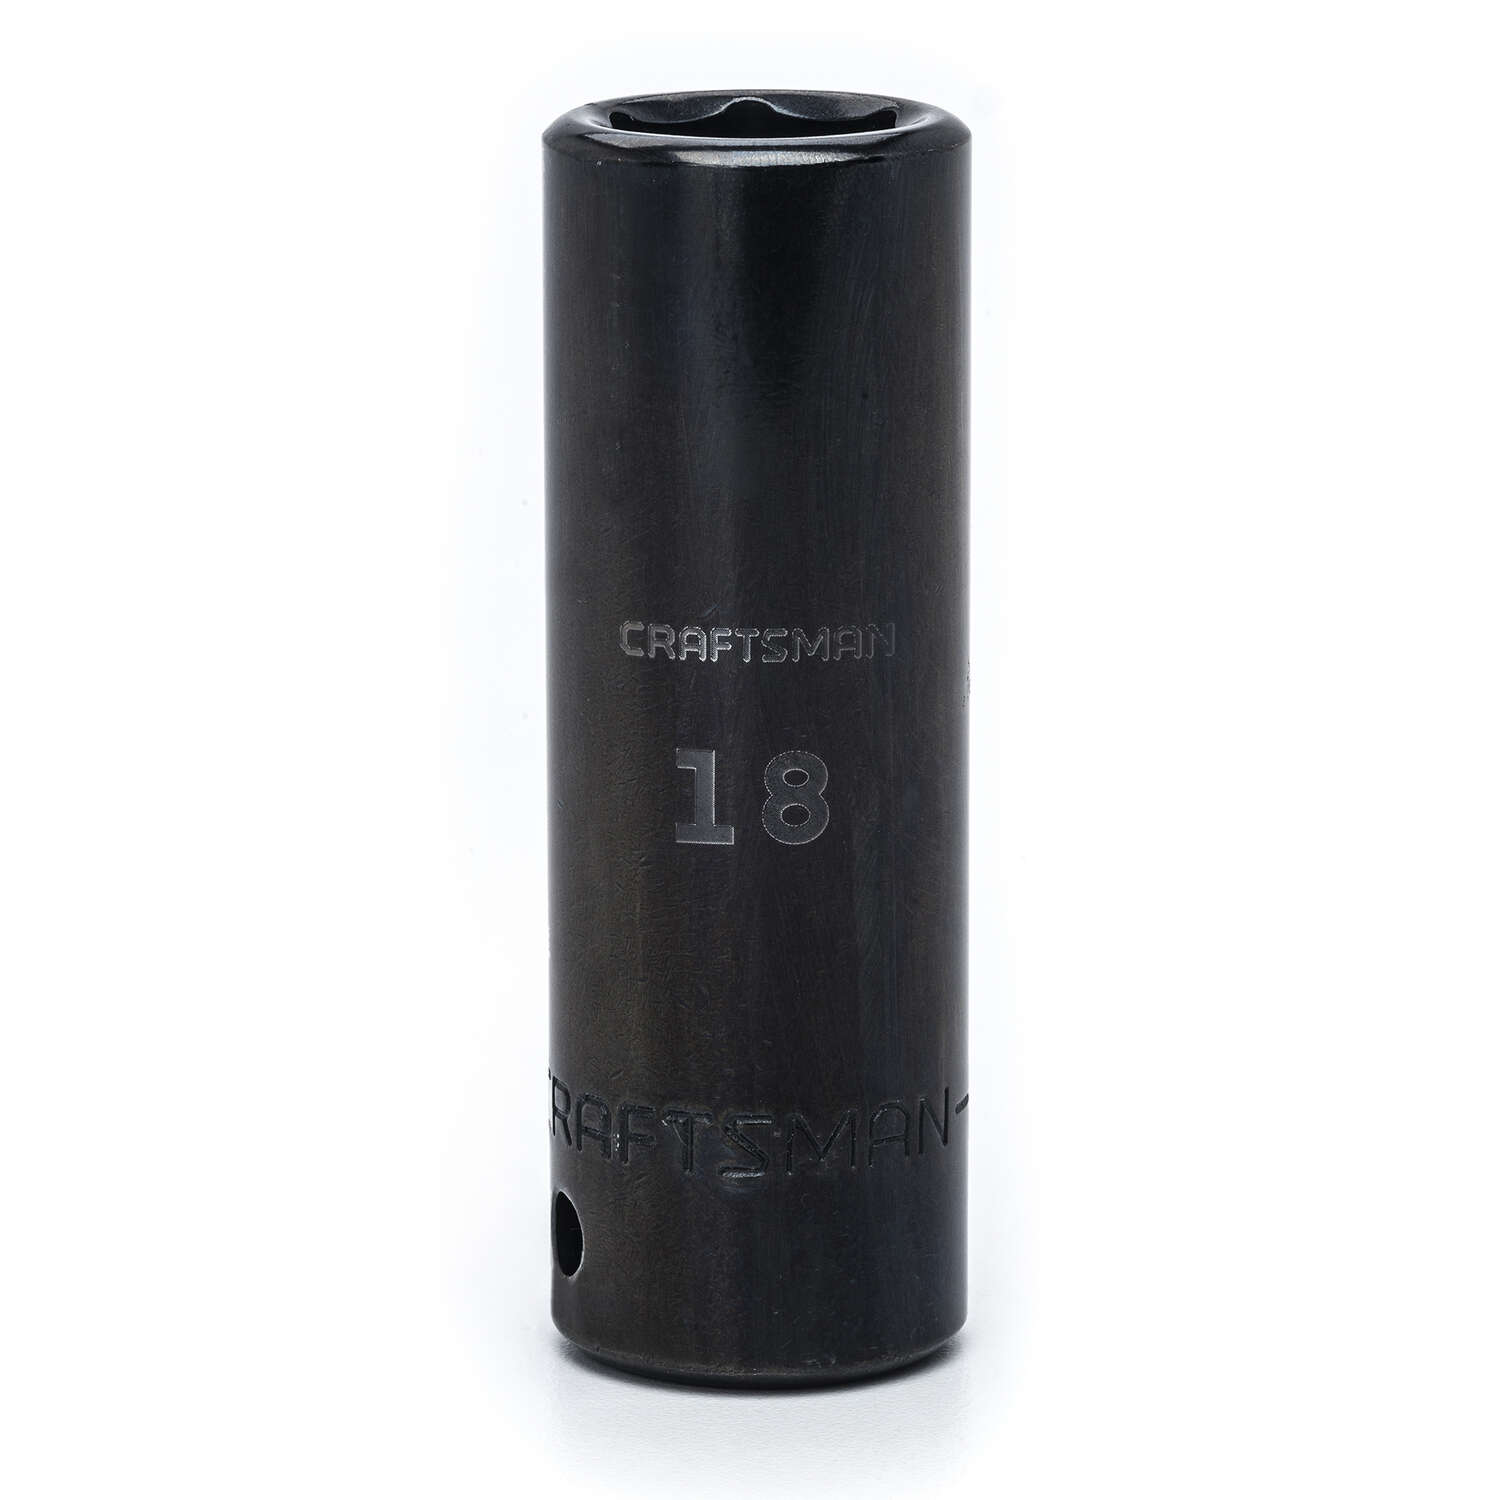 Craftsman  18 mm  x 1/2 in. drive  Metric  6 Point Deep  Impact Socket  1 pc.